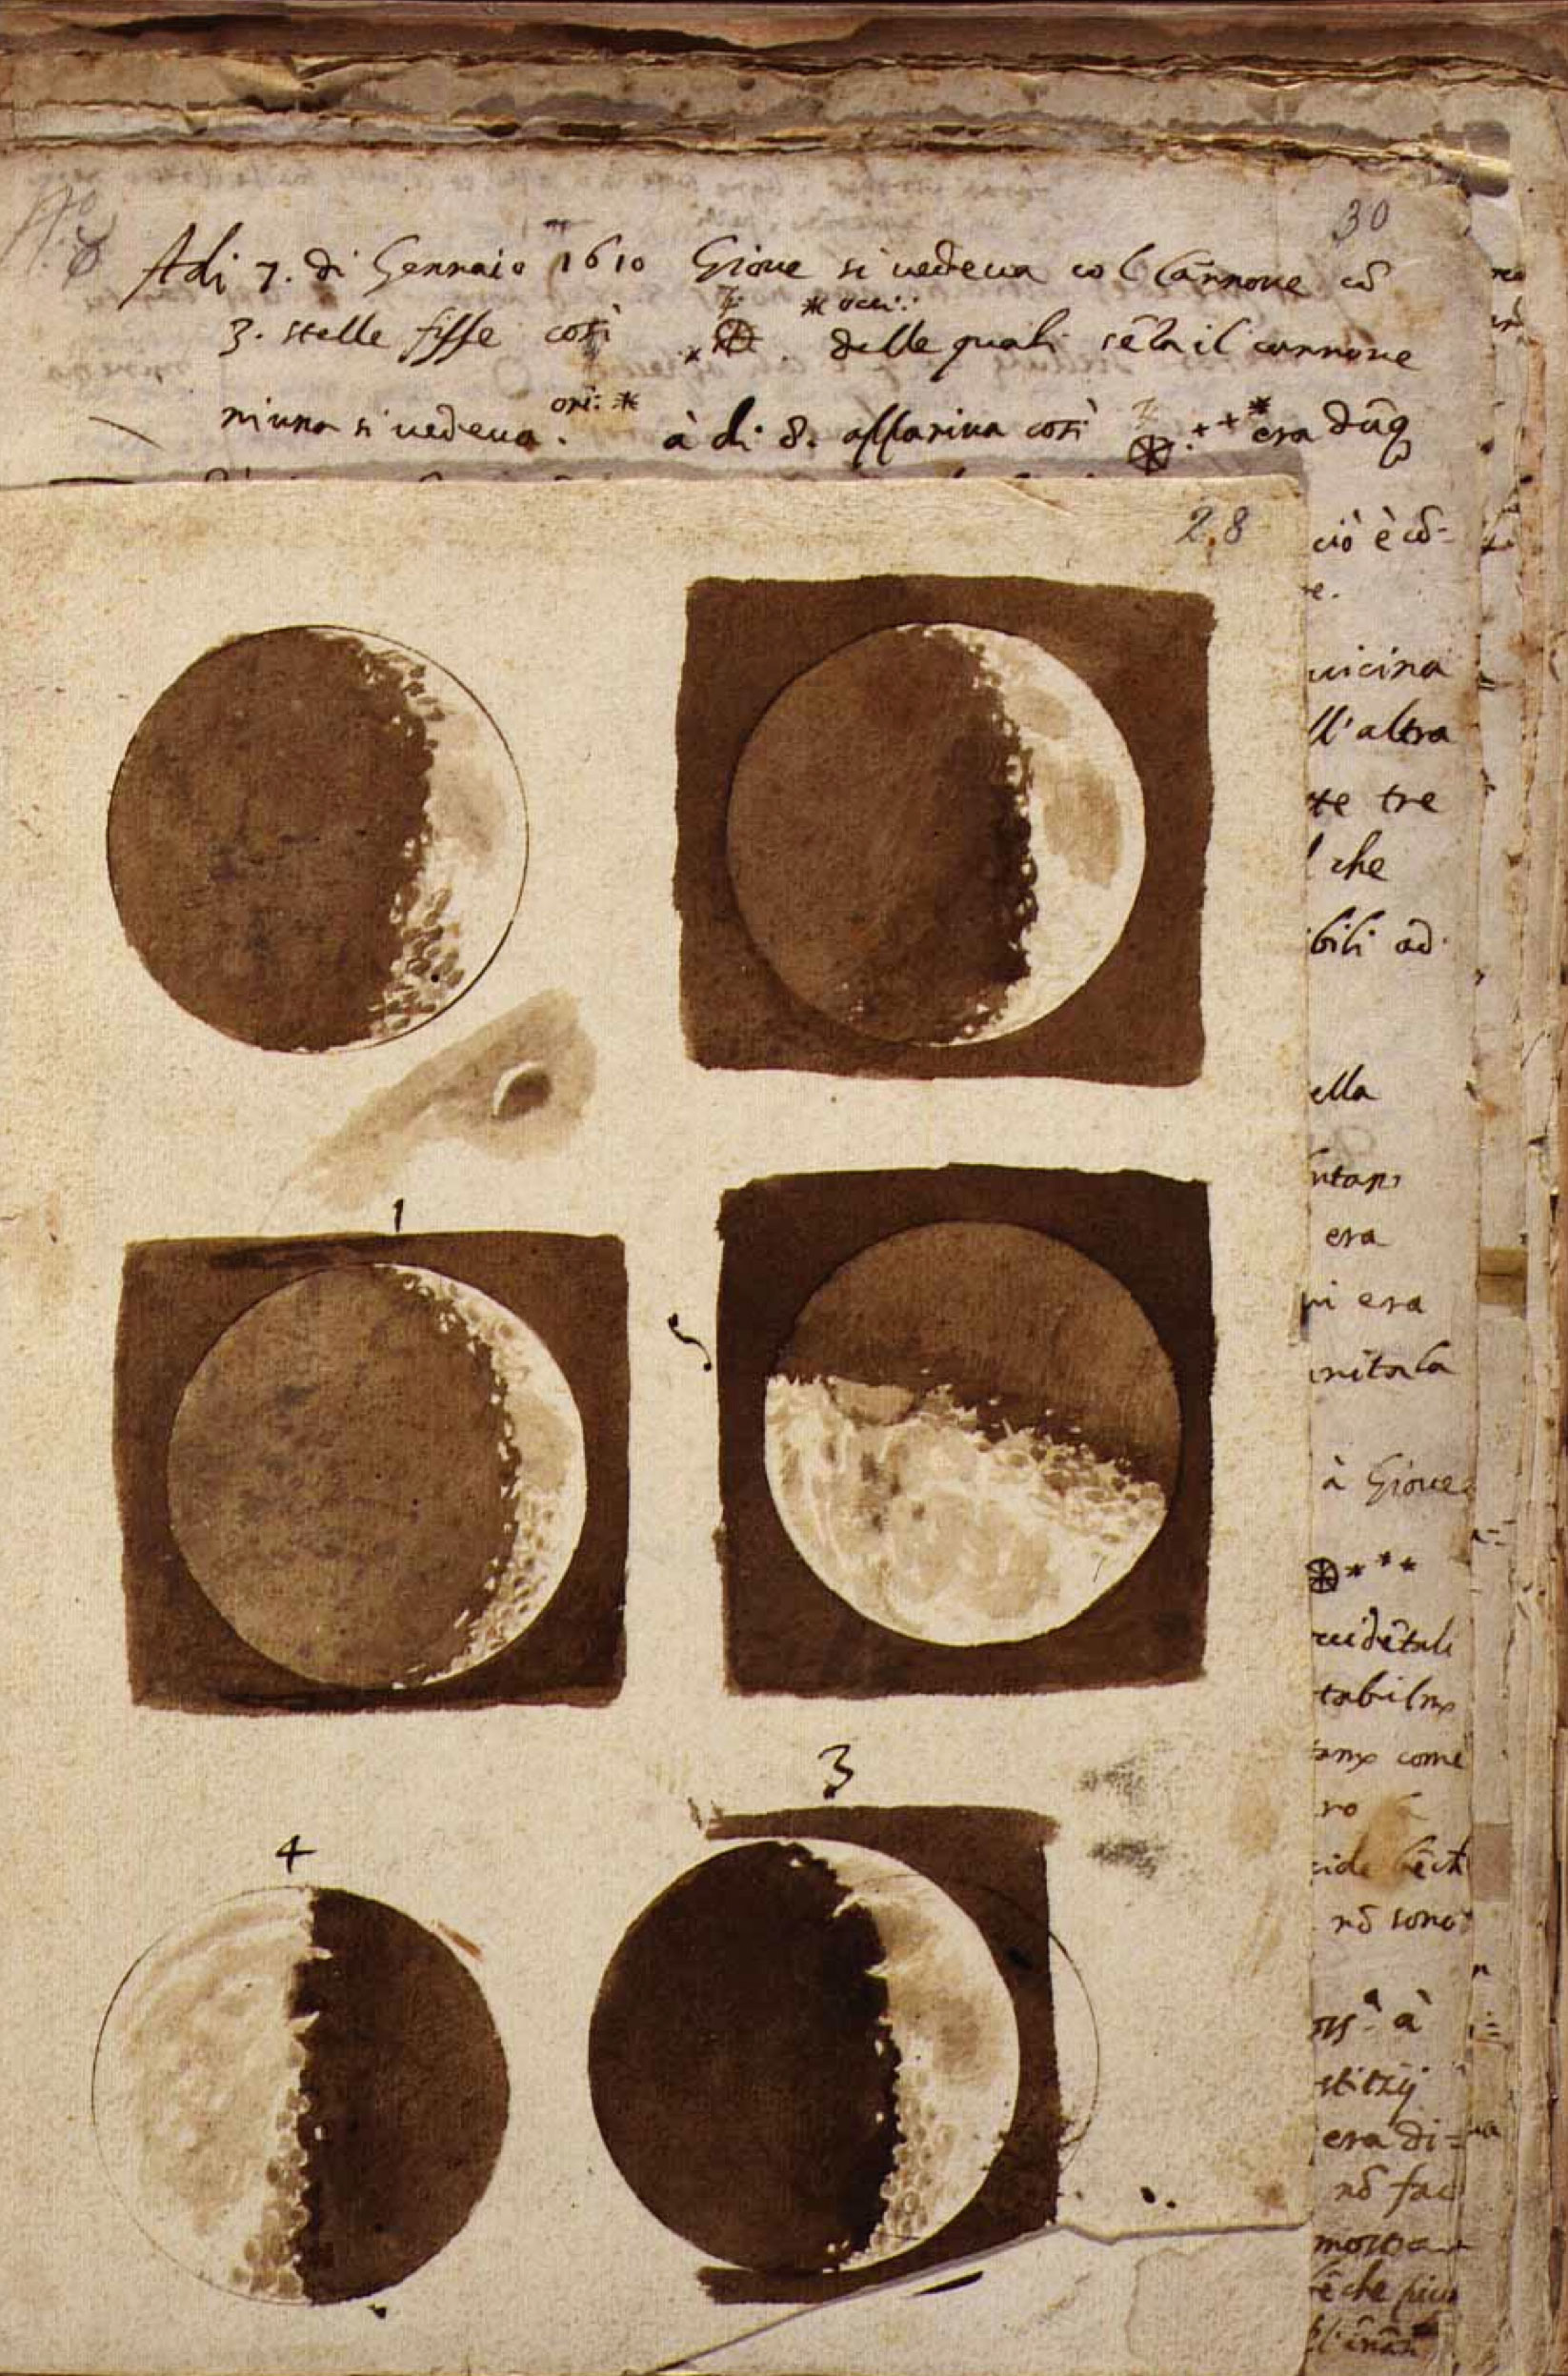 The moon, 1609, by Galileo Galilei. As reproduced in Universe